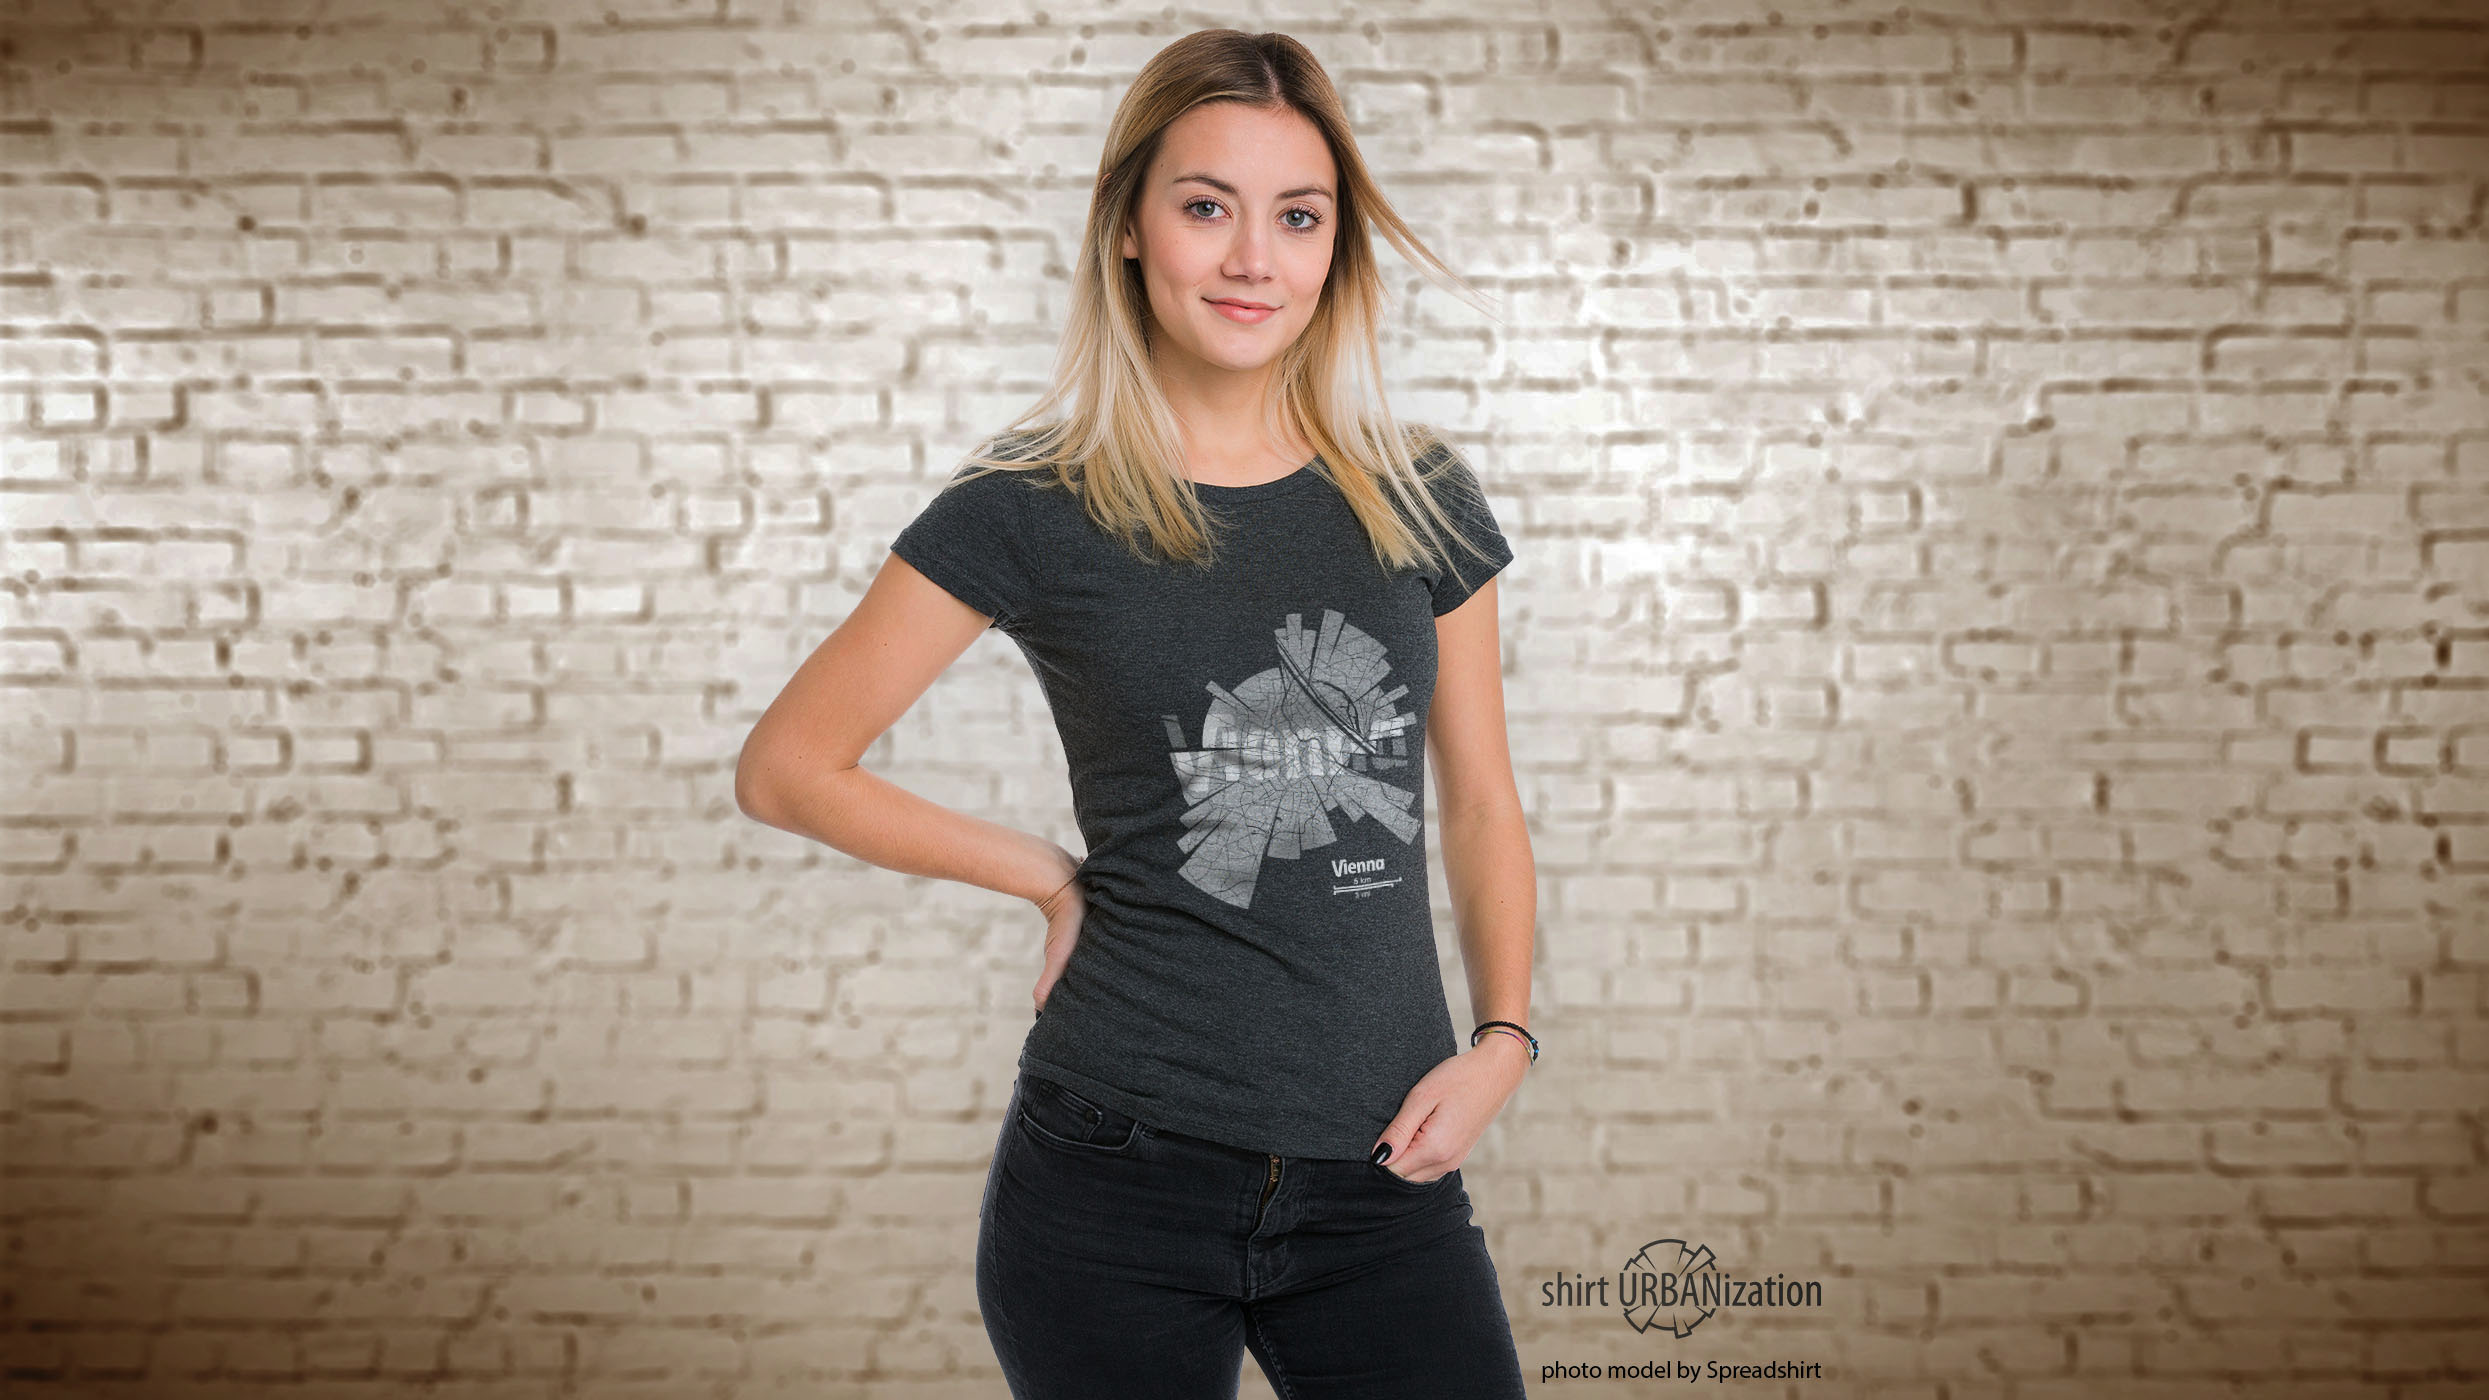 Girl with Vienna T-Shirt